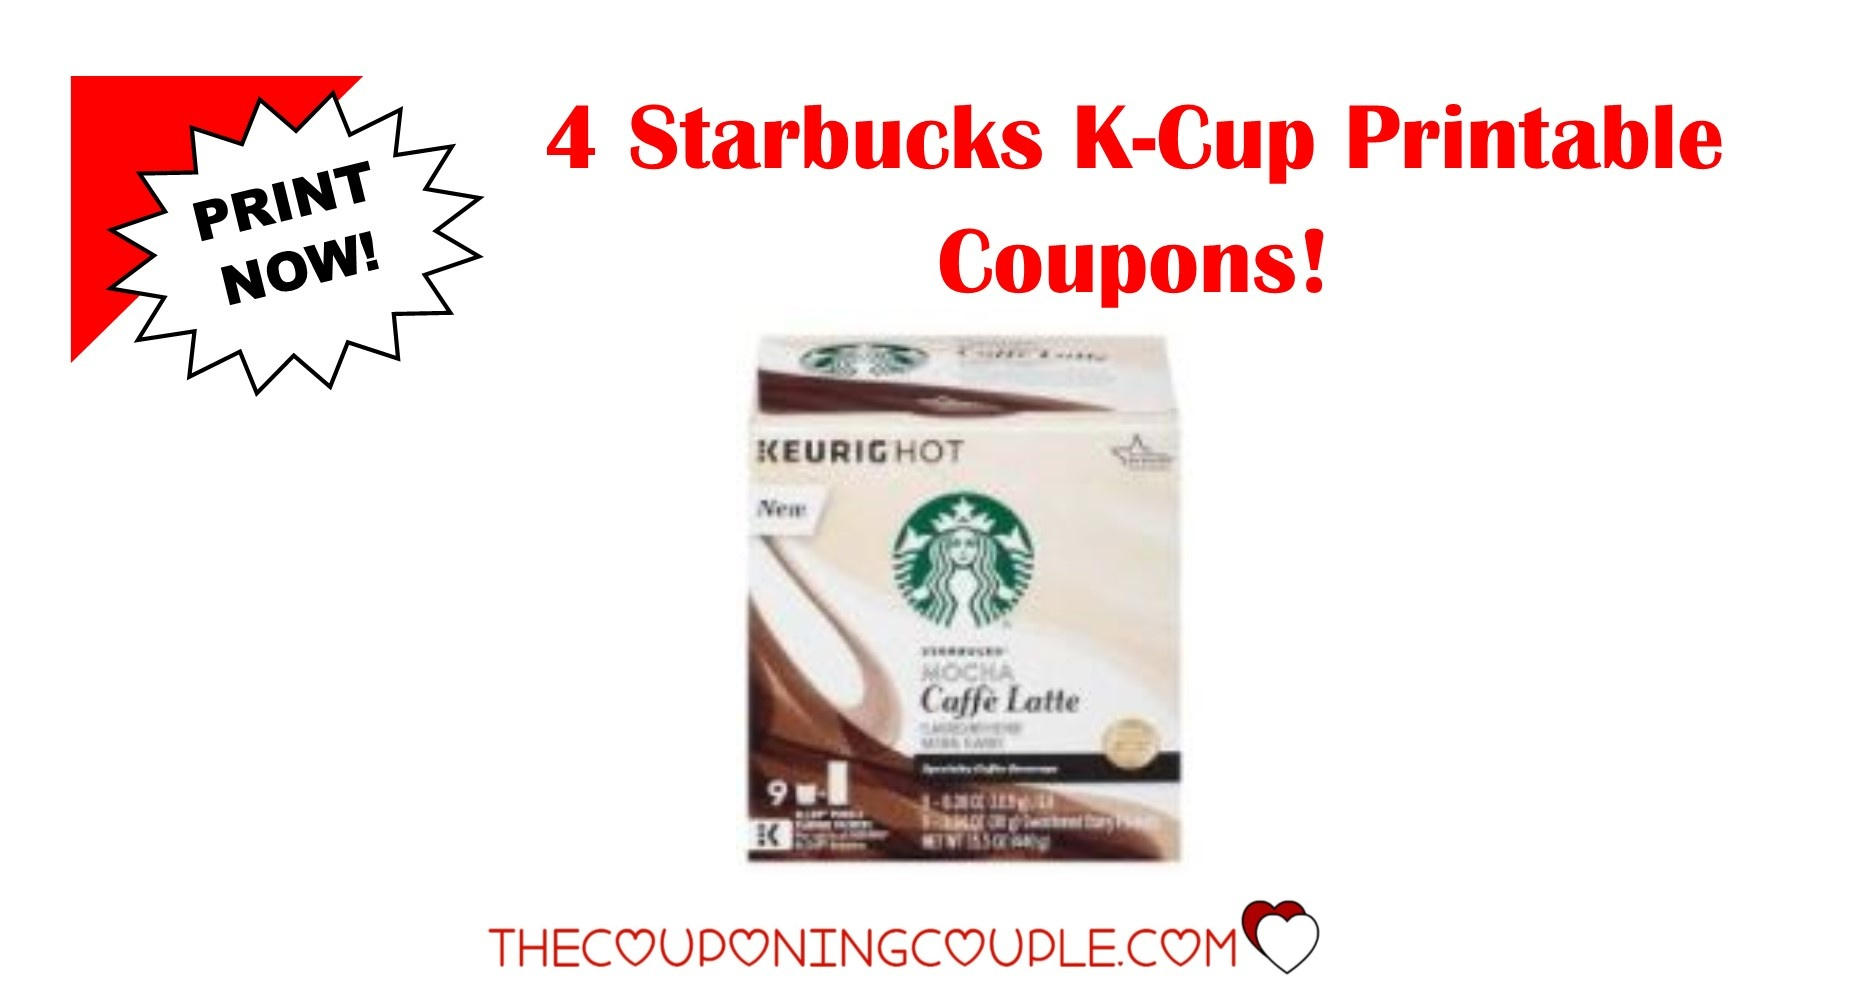 4 New Starbucks K-Cup Pods Printable Coupons ~ Save $7.75! - Free Starbucks Coupon Printable